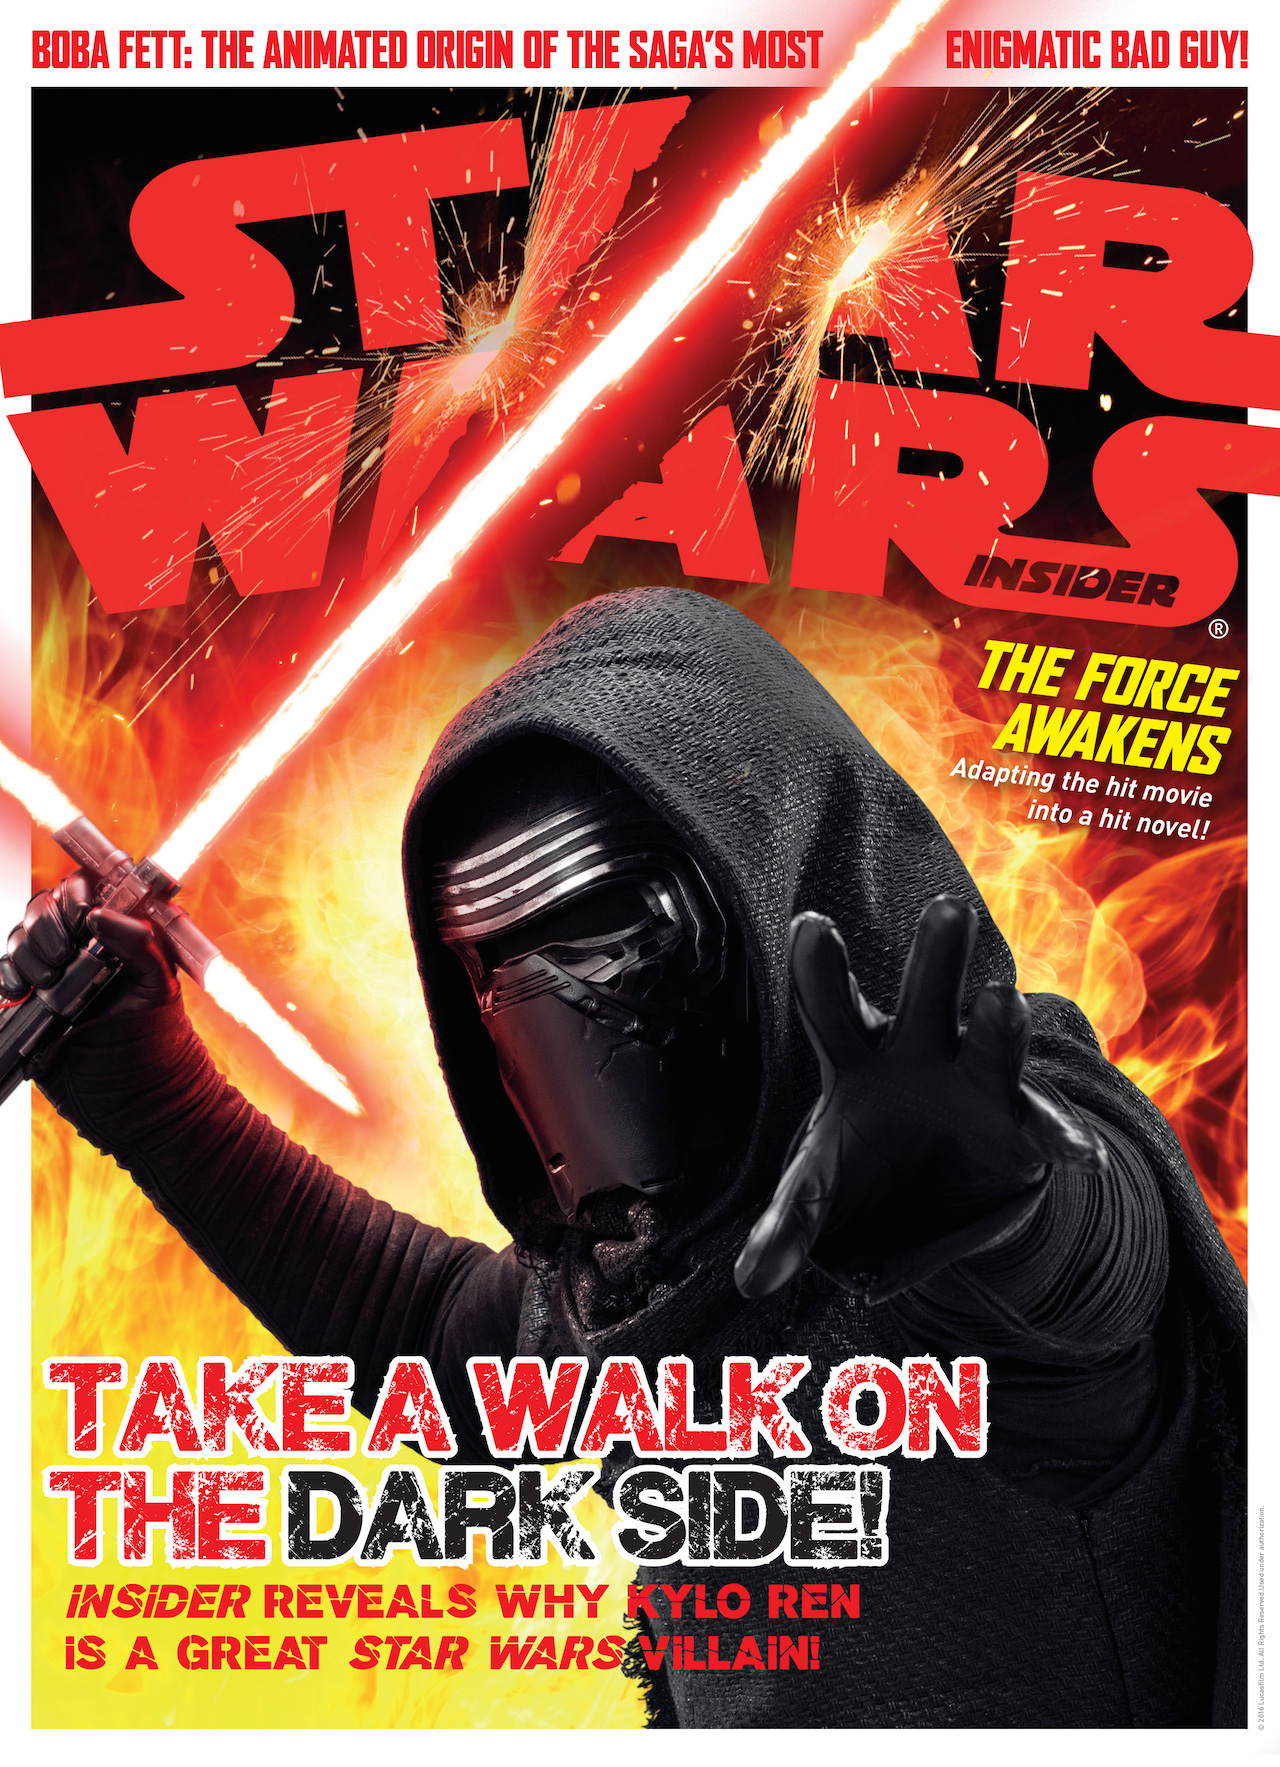 Star Wars Insider #164 Kylo Ren Cover